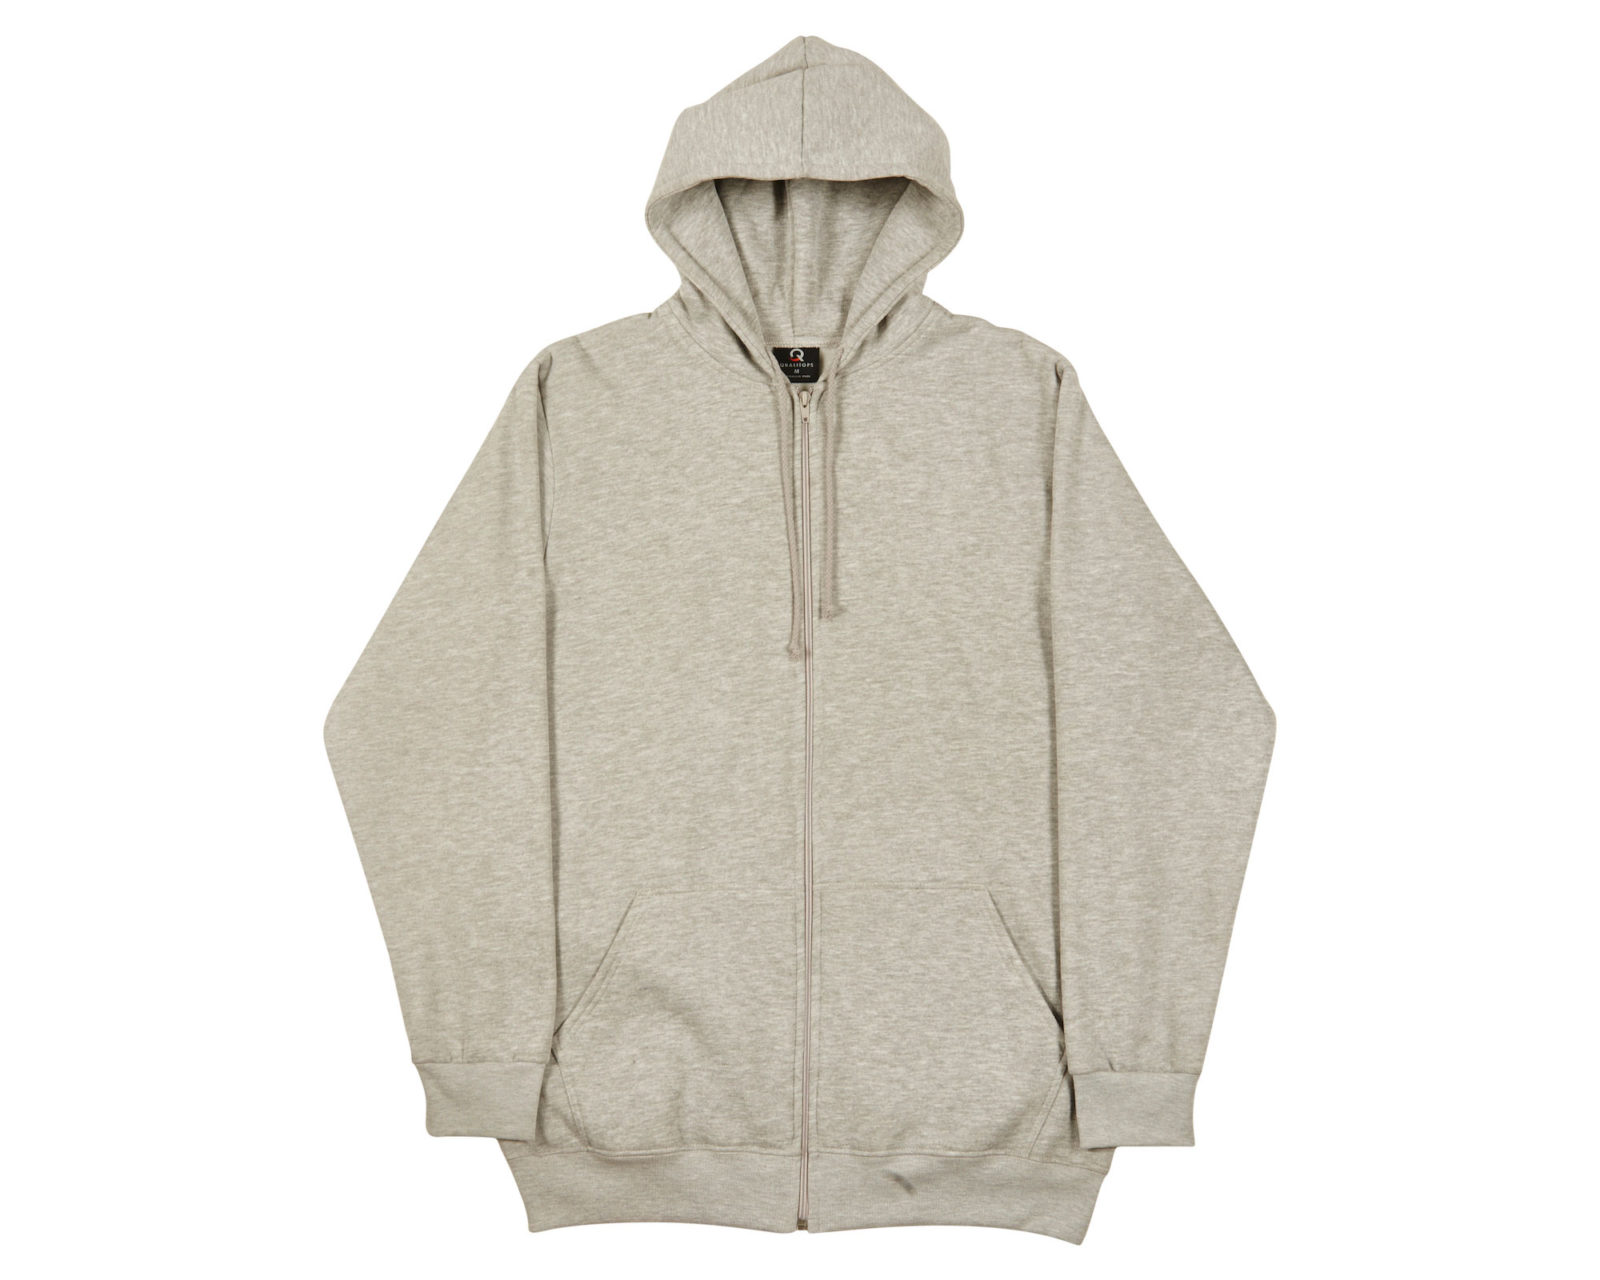 Qualitops Mens Tall Zip Hoodie Polycotton Australian made clothing